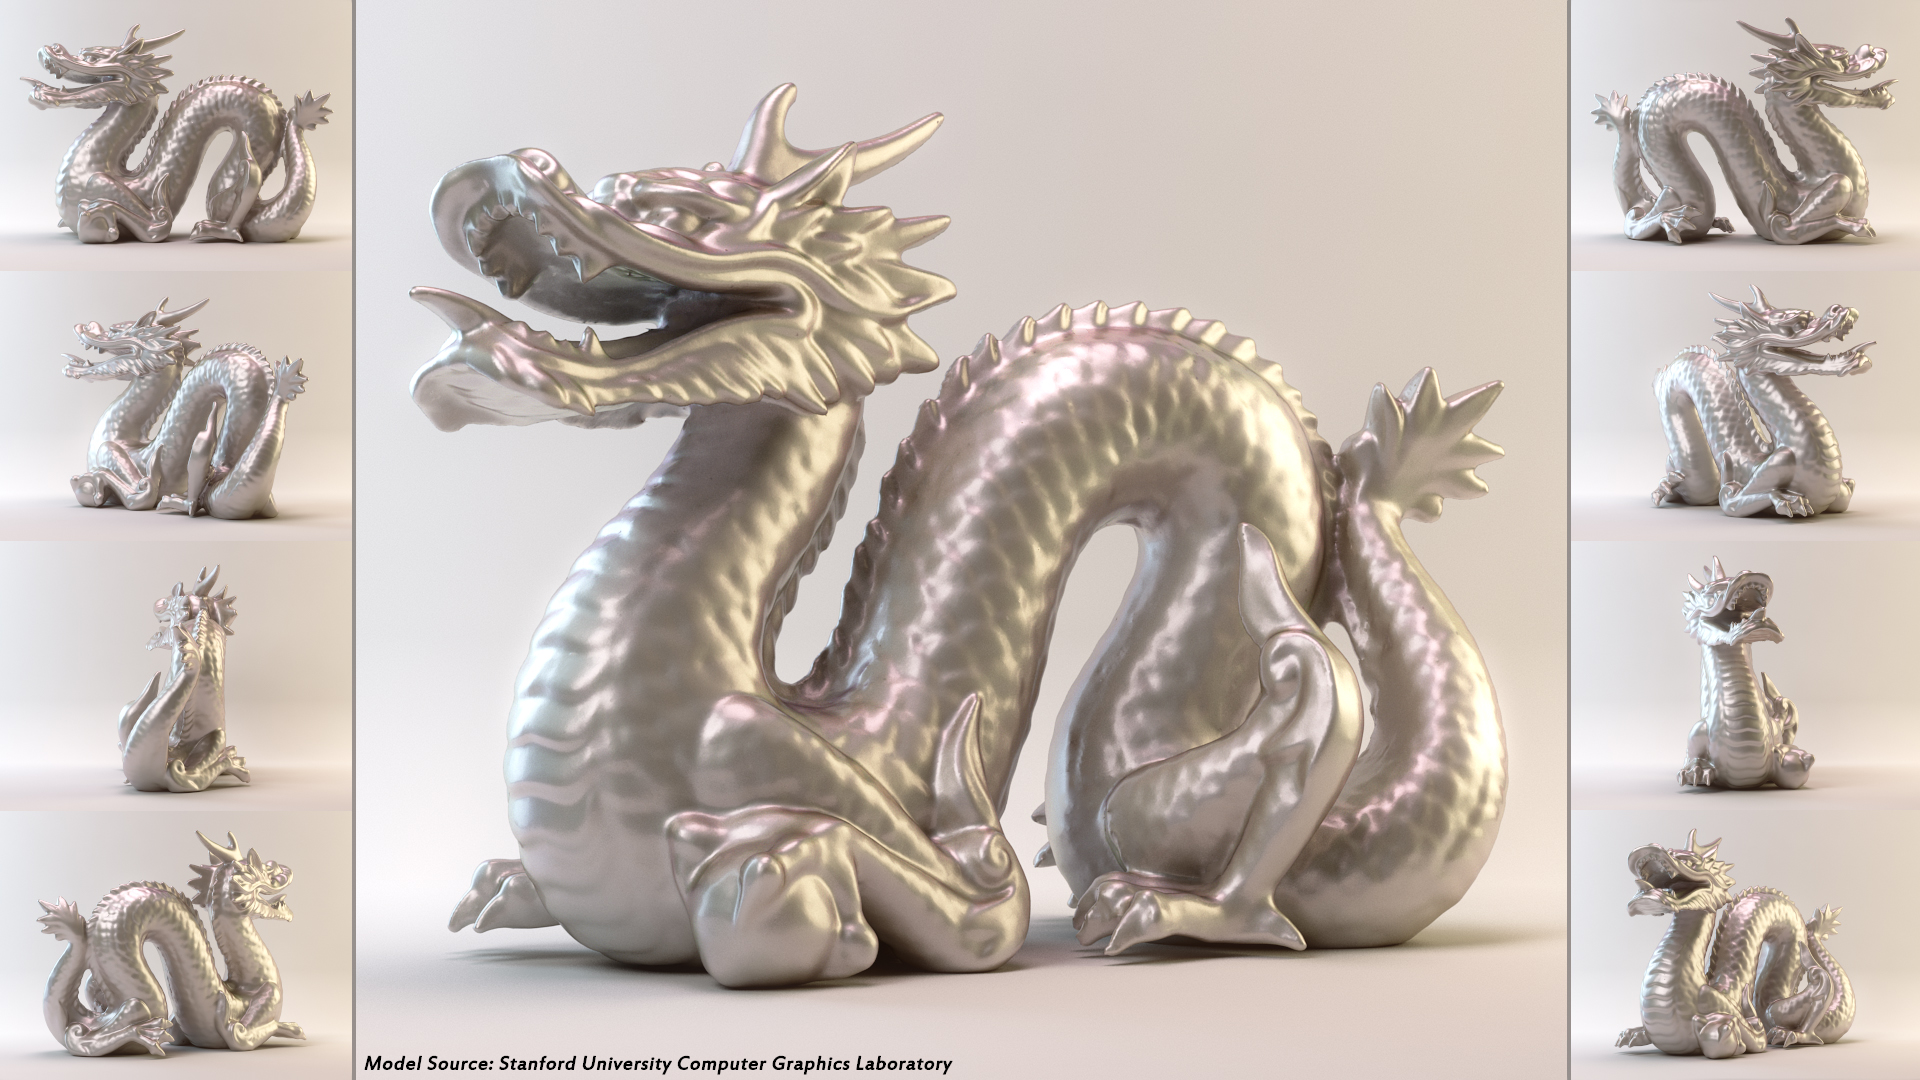 An opalescent study of the  Stanford Dragon .  This is a raw render with no post.  I tried a bunch of different methods here, using references from Chaosgroup forums, vray-materials.de, and siger-studio.  In the end, Sigers was the best method though quite slow and I was only able to improve the render speeds at the cost of minor noise.  I wouldn't want to have to render an animated character with this method, but no others came close to the level of realism.